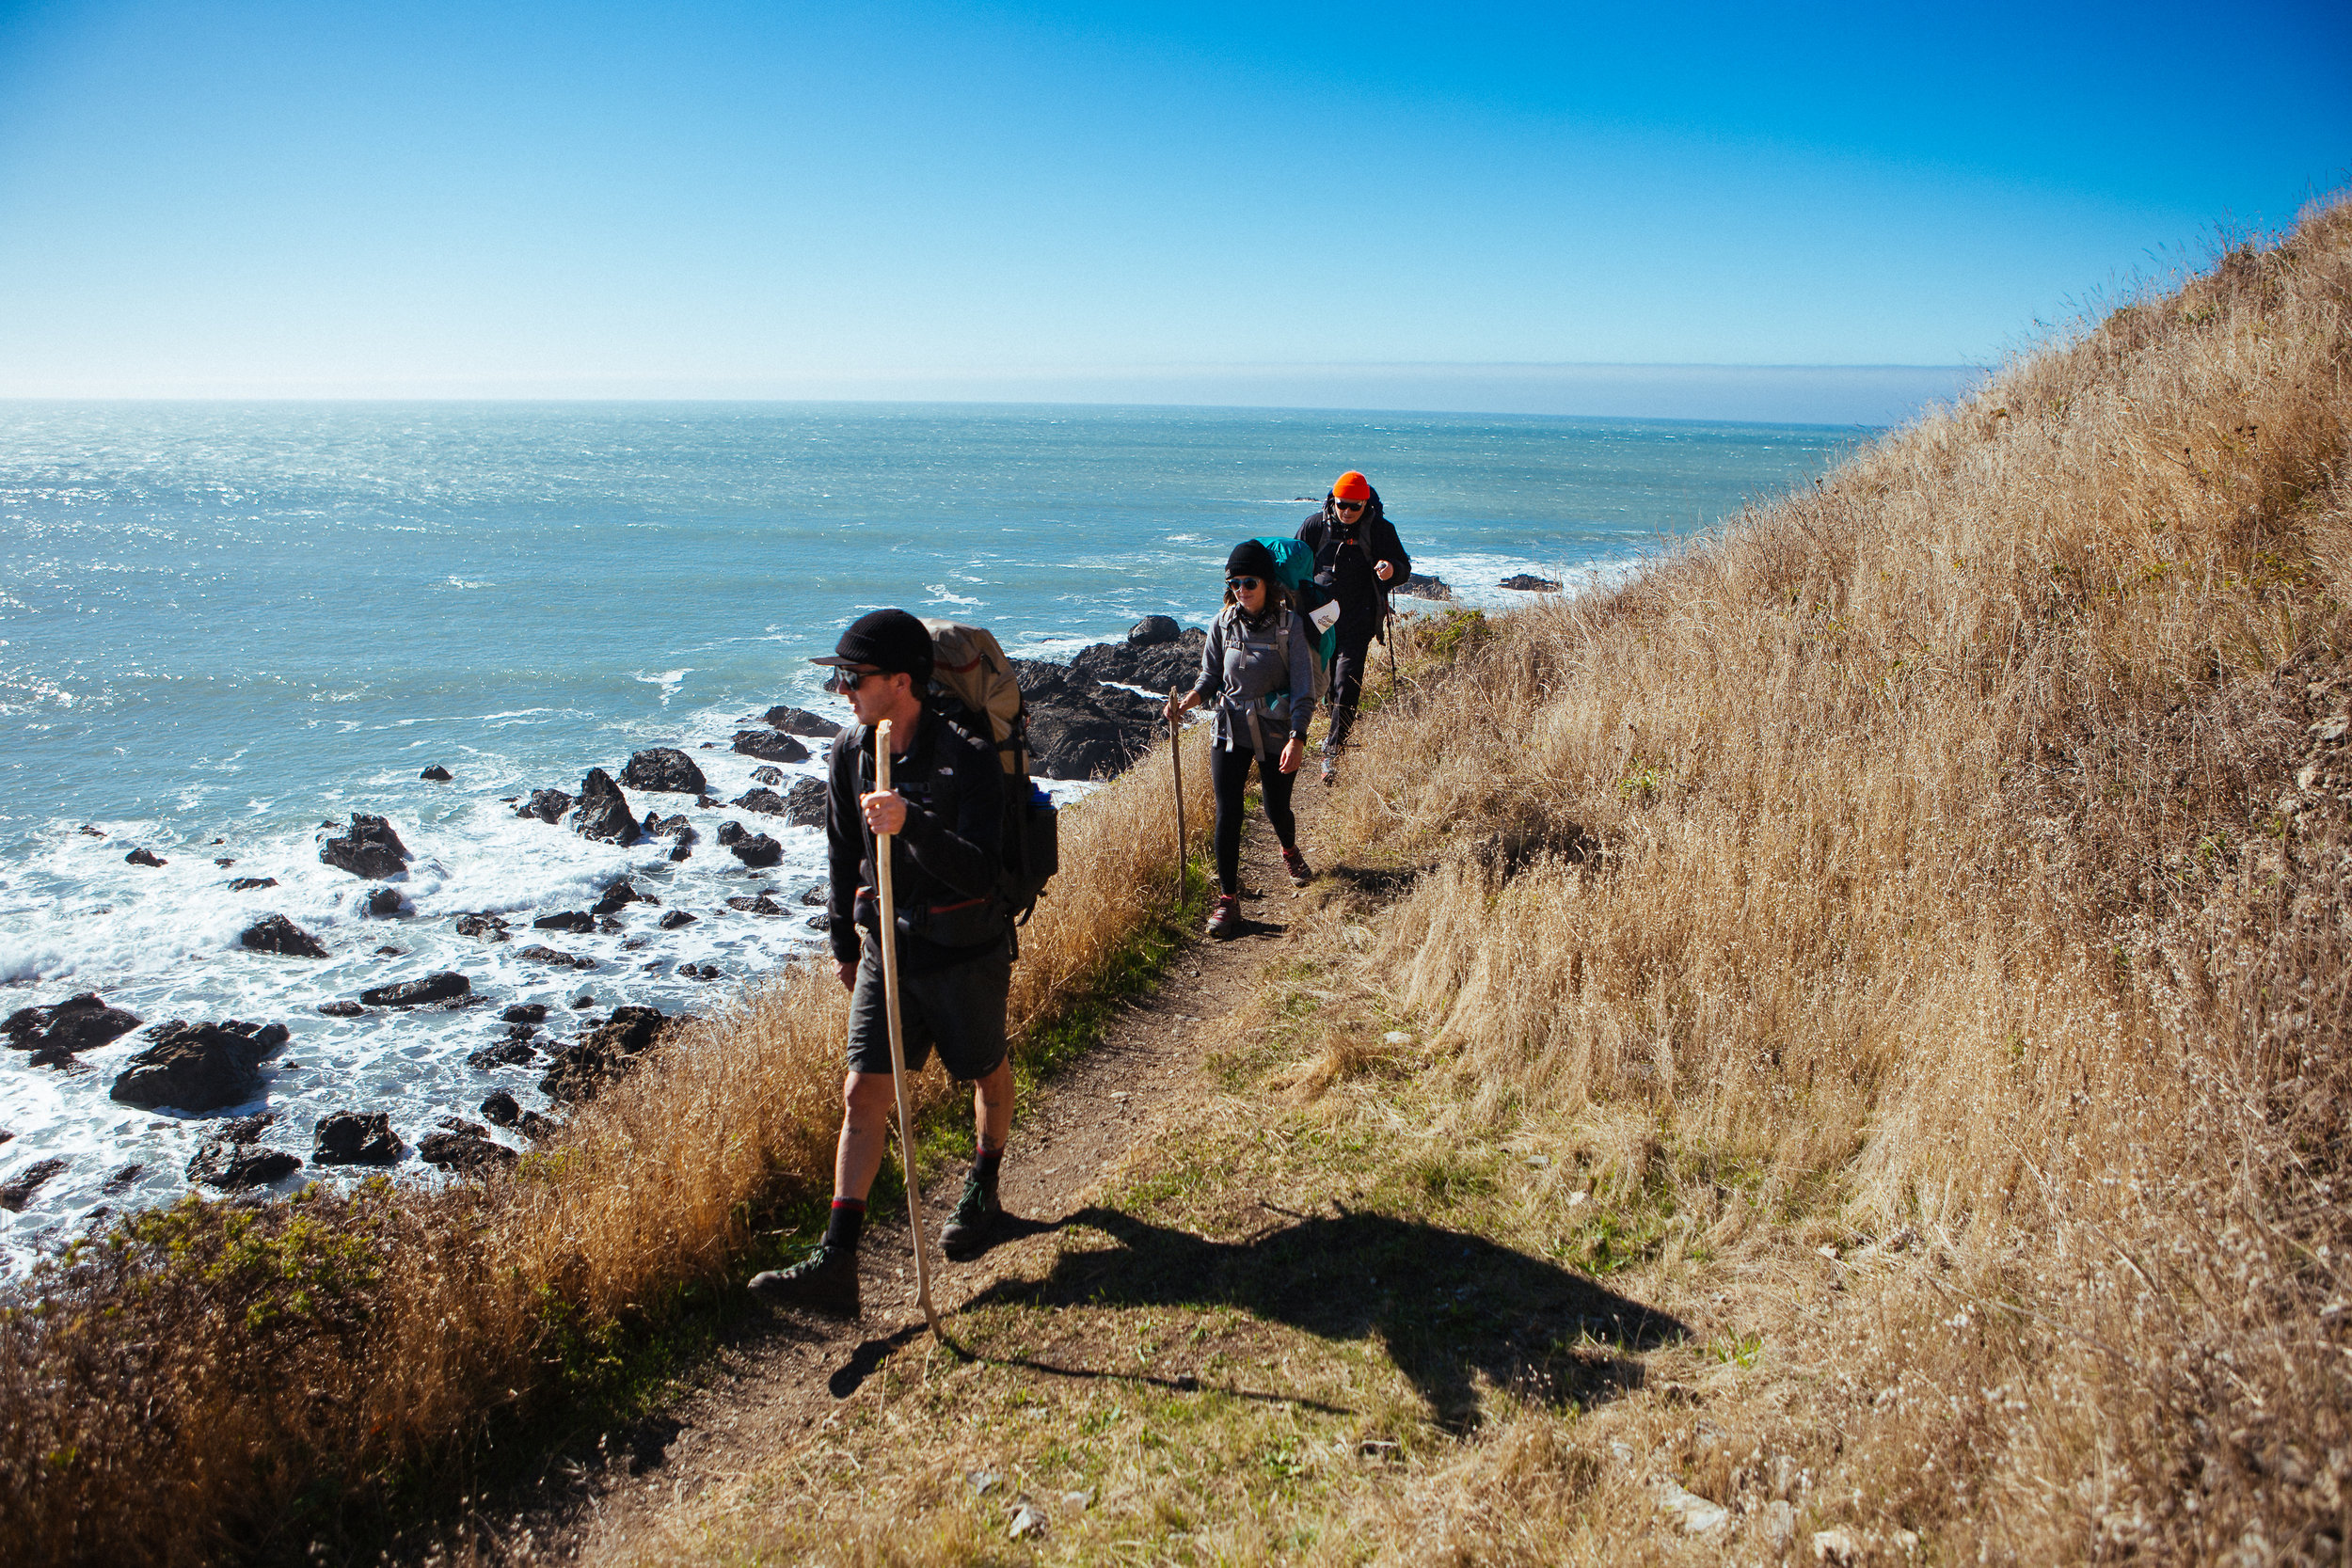 The trail in the beginning is nice and casual, starts you off in a great adventurous mood.